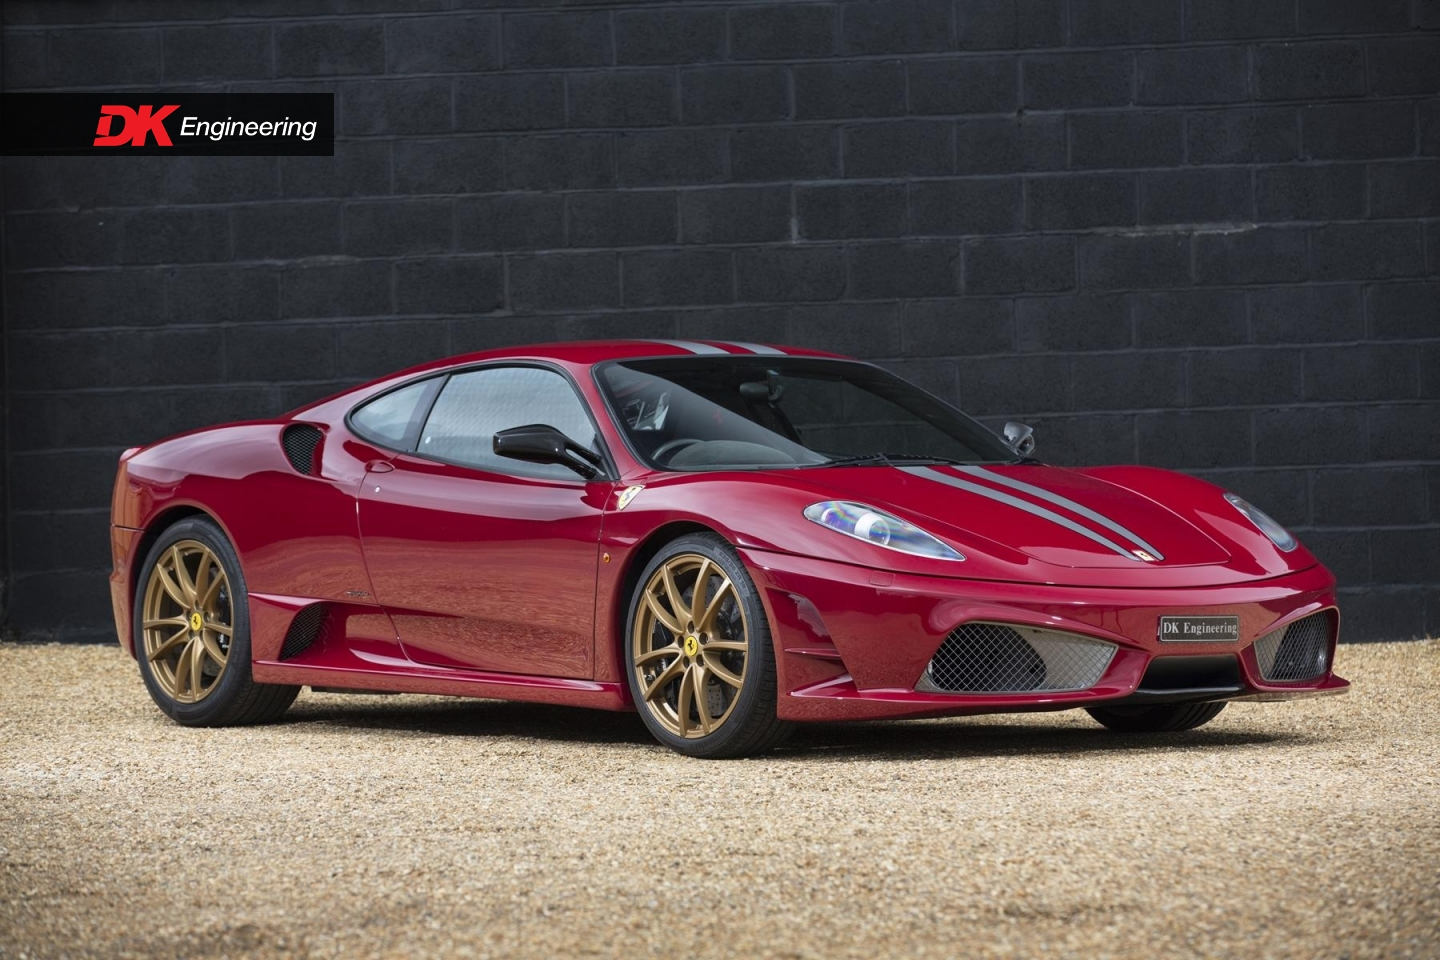 Rosso Mugello Ferrari 430 Scuderia for Sale at £204,995 in the UK